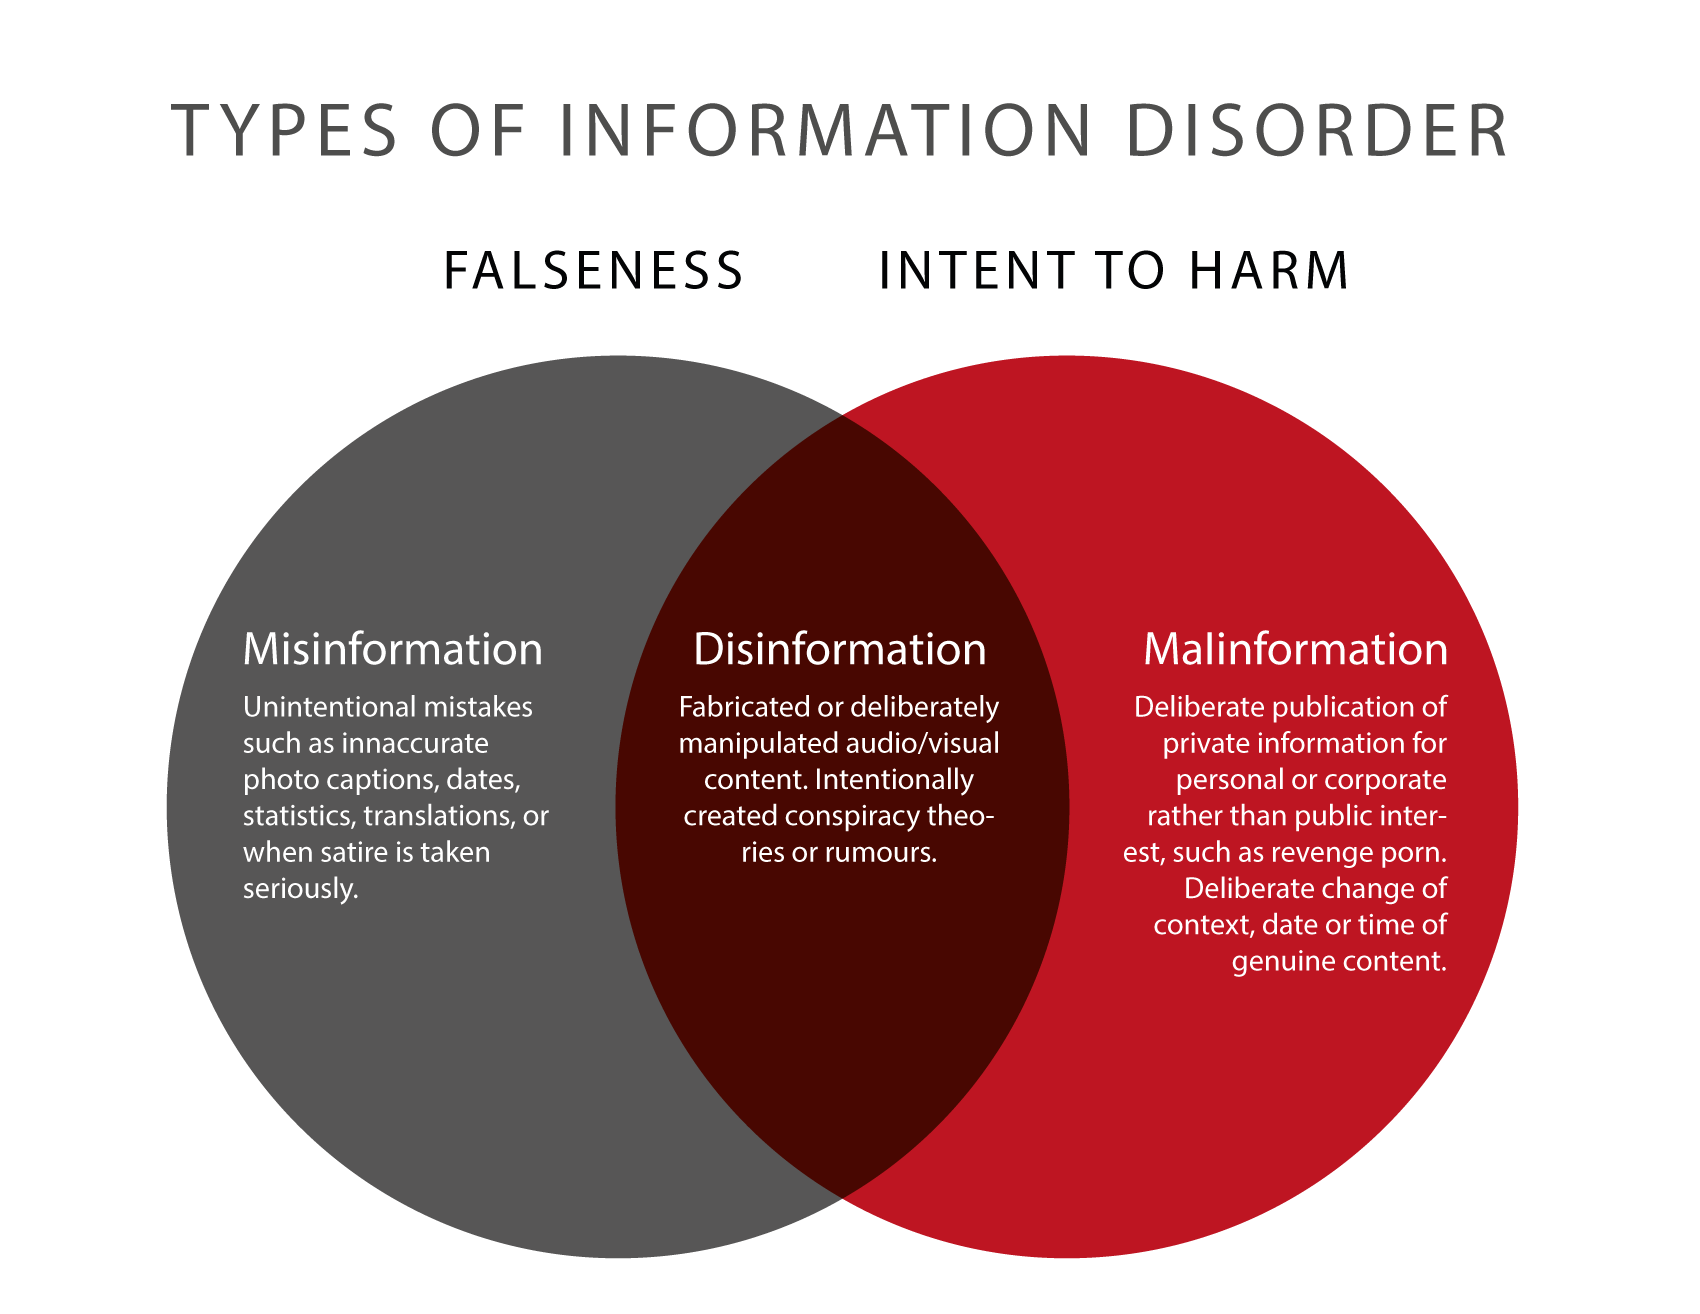 Types of Information Disorder